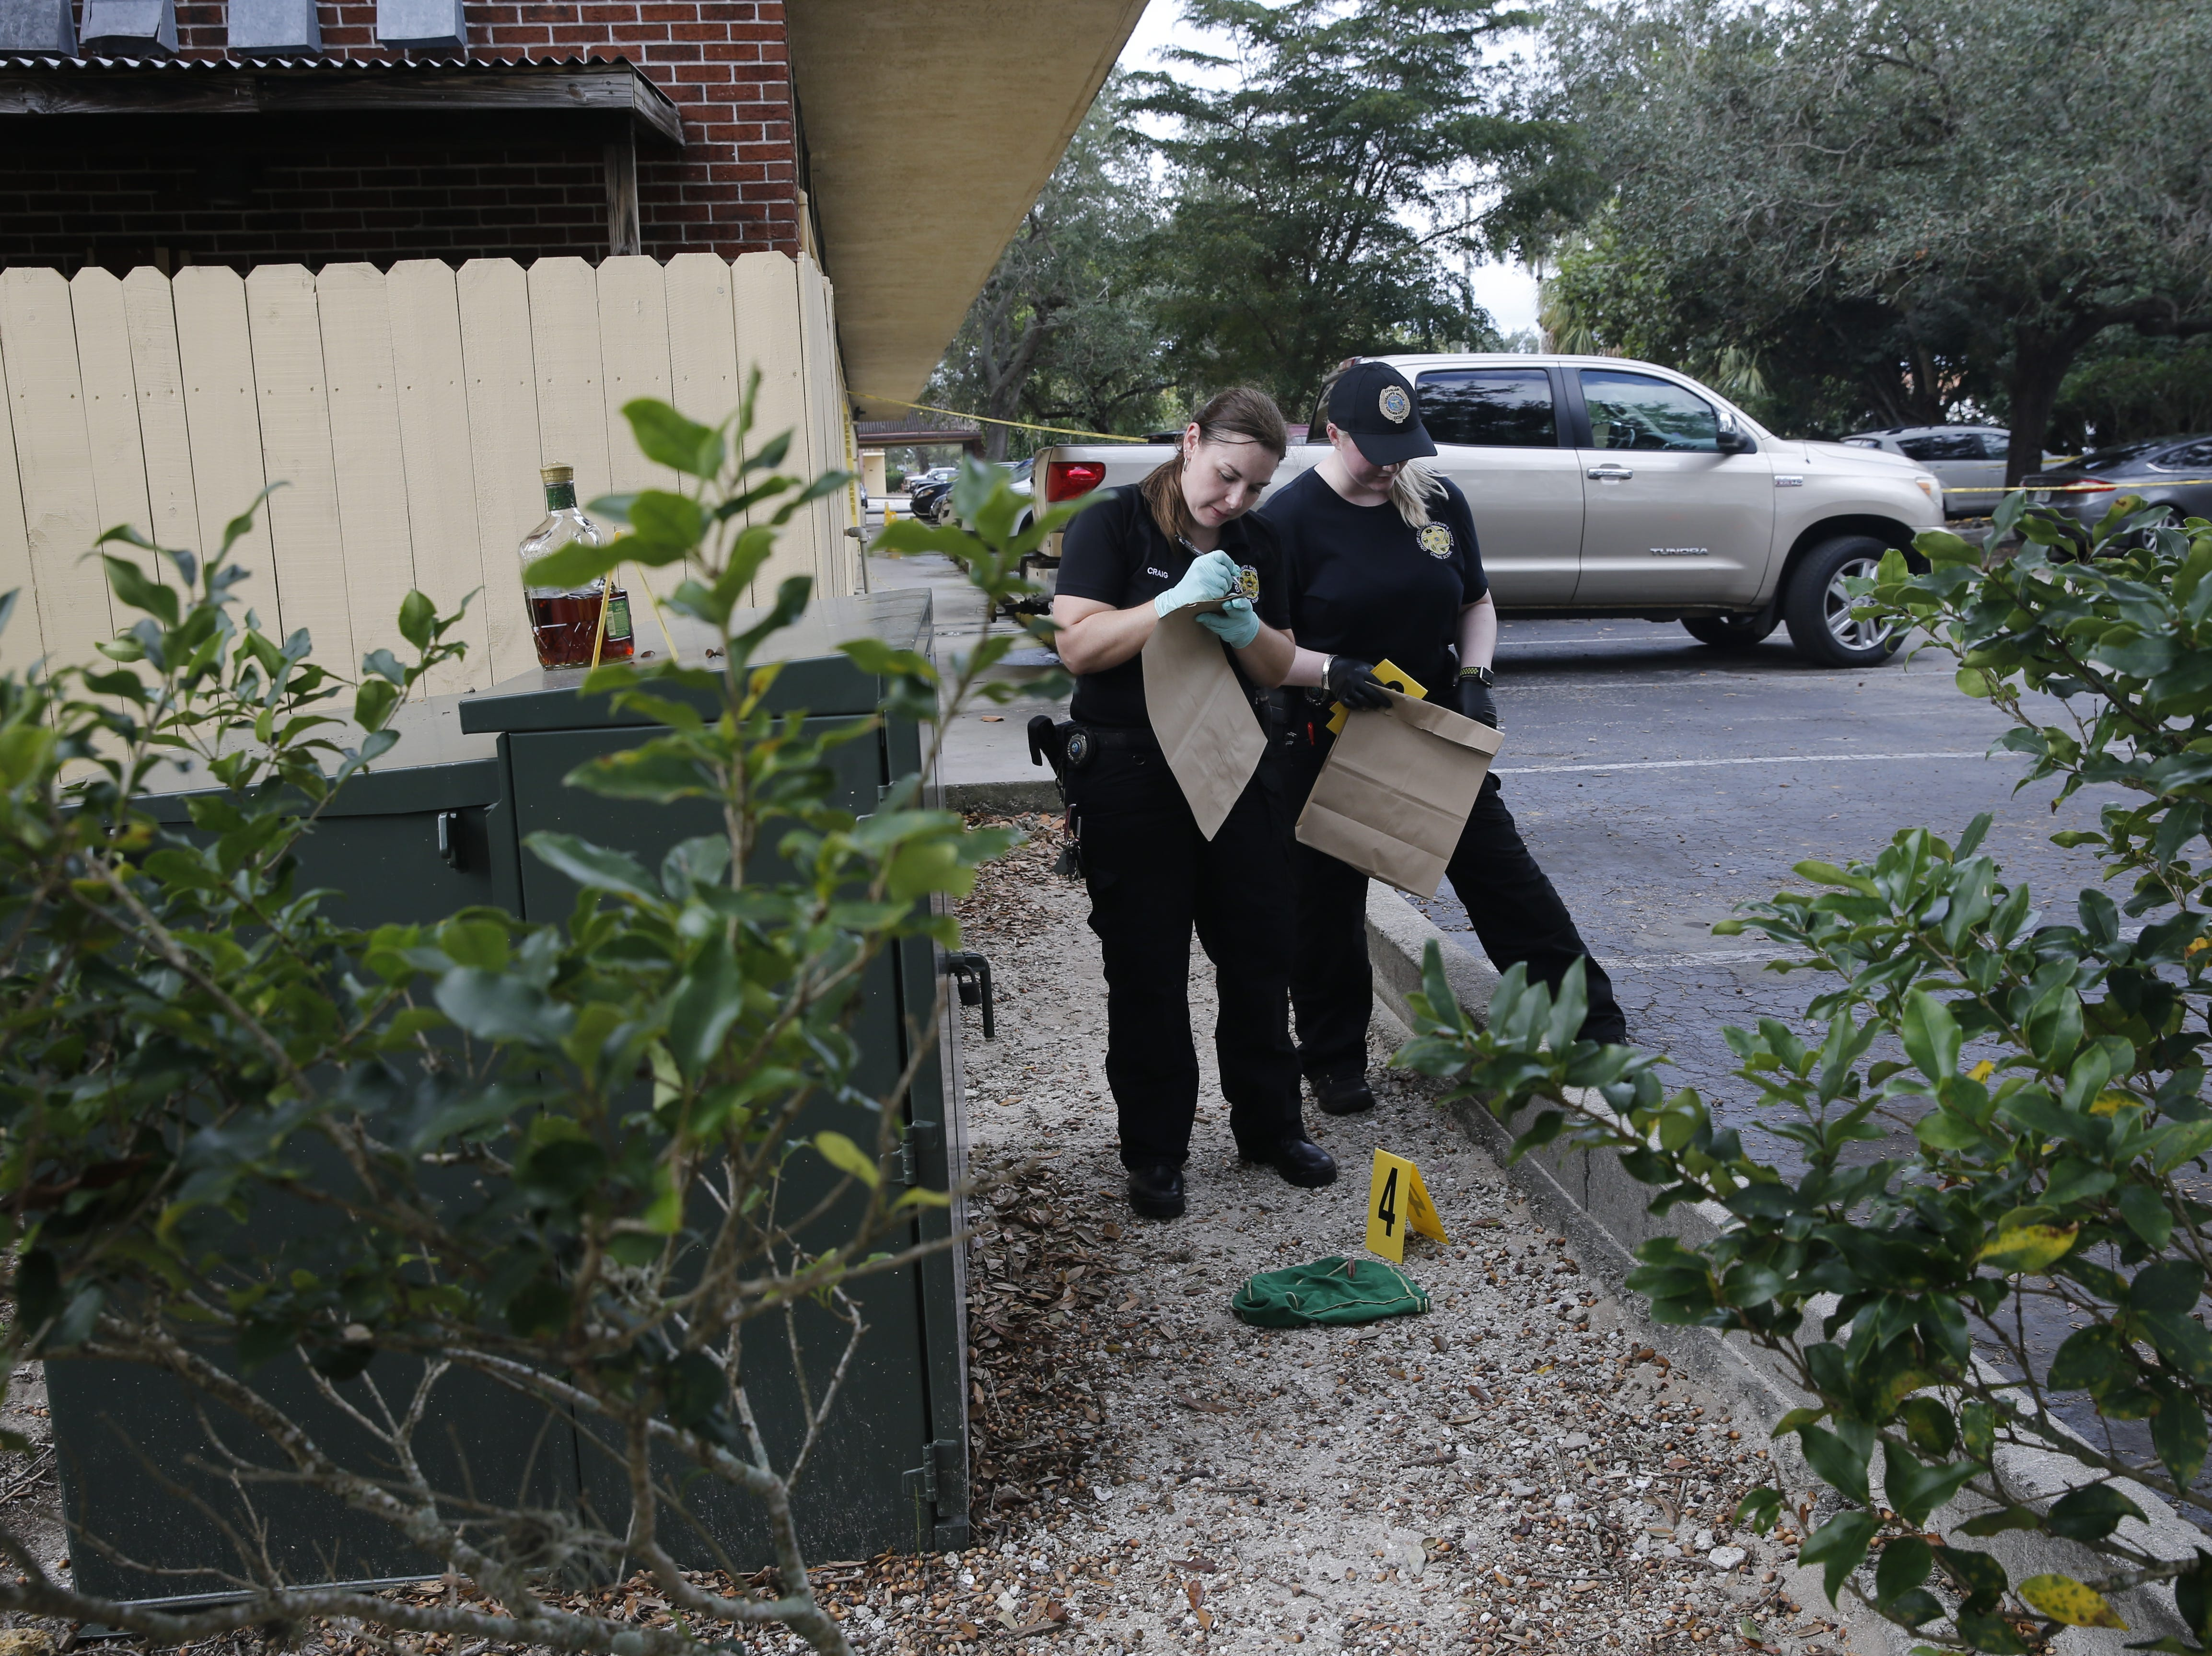 Collier County Sheriff's Office crime scene investigators process evidence at the scene of a homicide, Thursday, Jan. 3, 2019 at a condominium complex in the 4000 block of Golden Gate Parkway near Collier Boulevard.